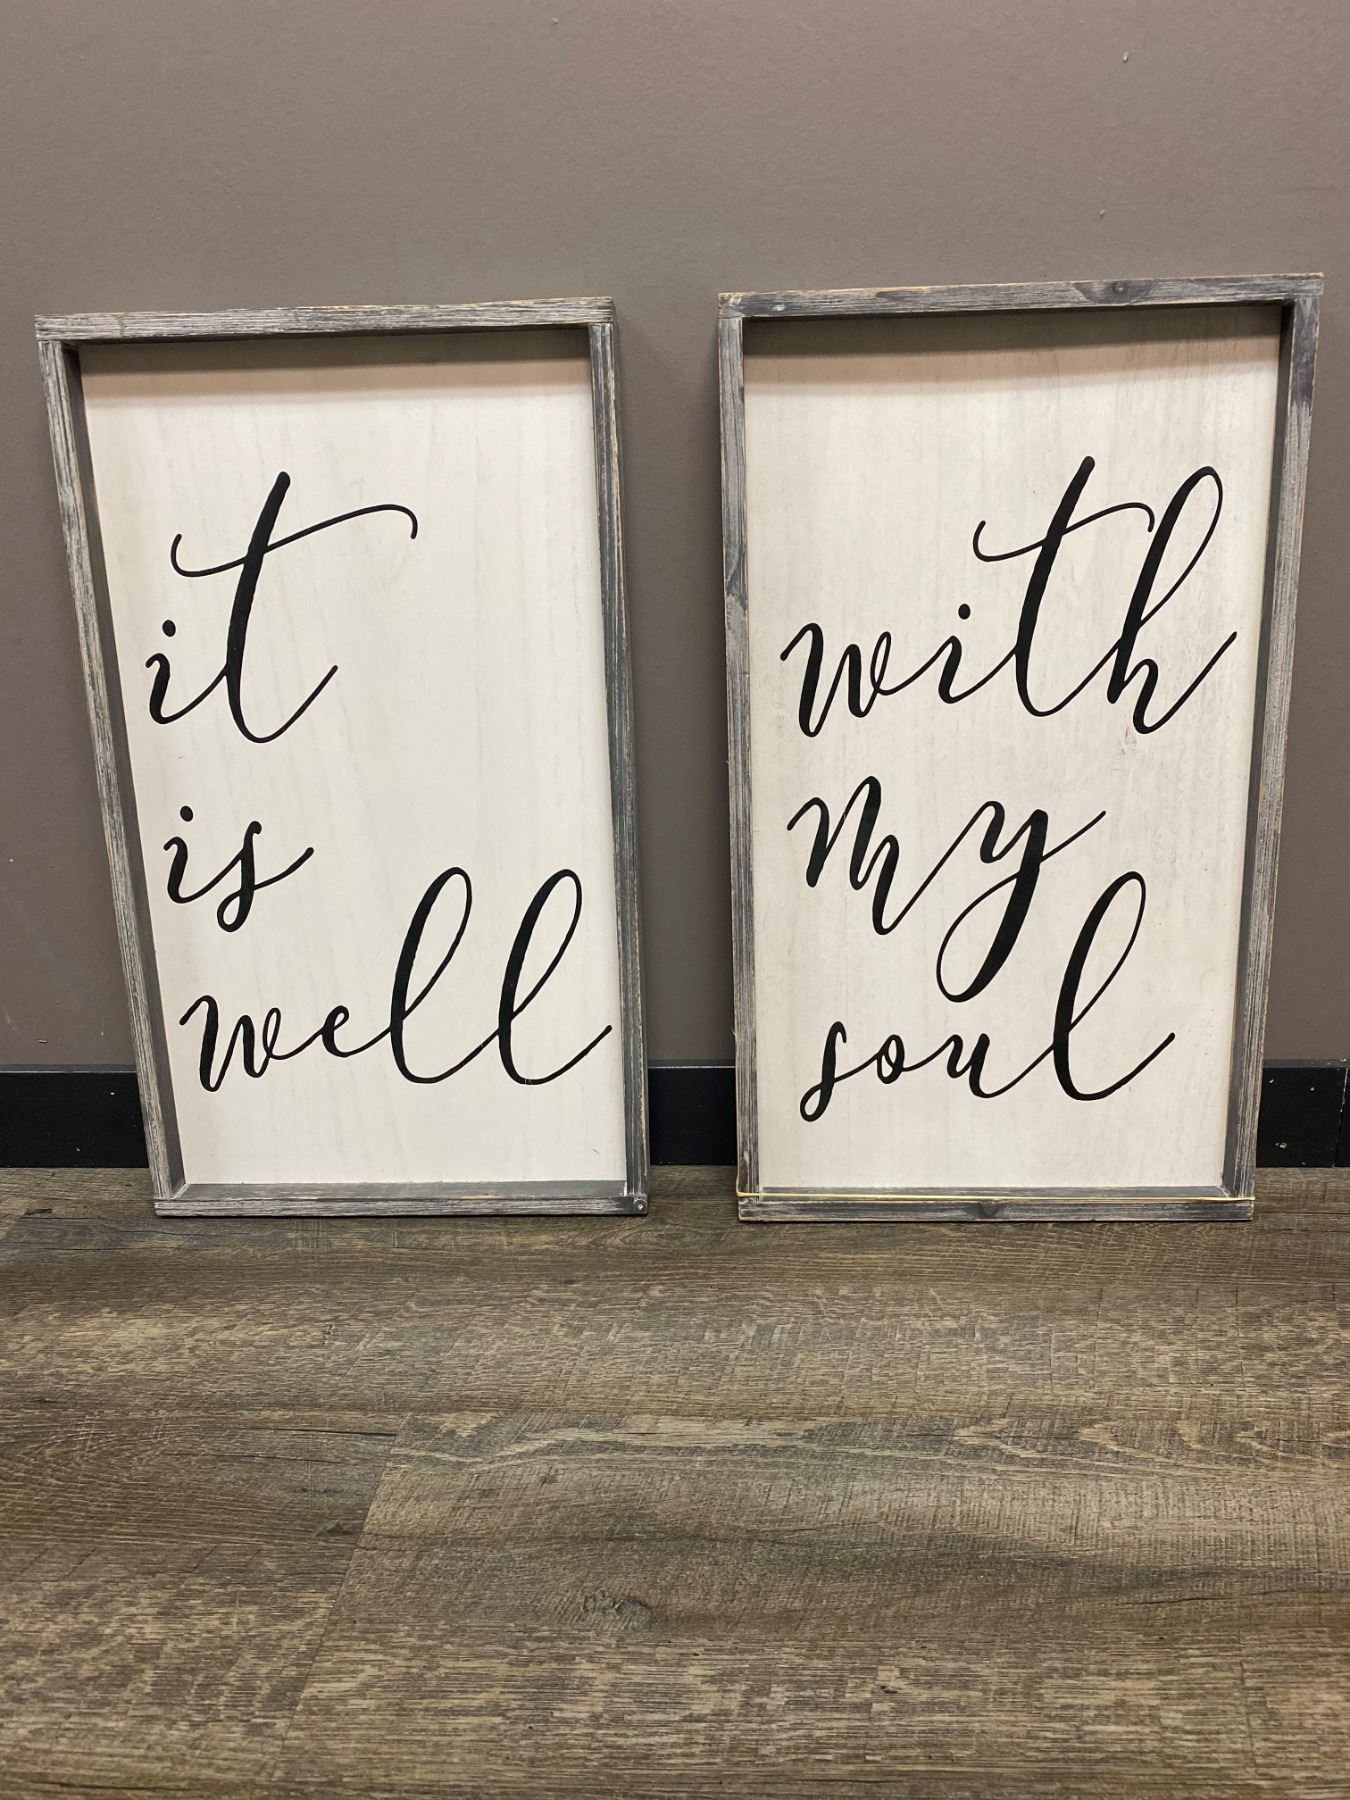 Inspirational Distressed Frame Wall Art - All Is Well With My Soul